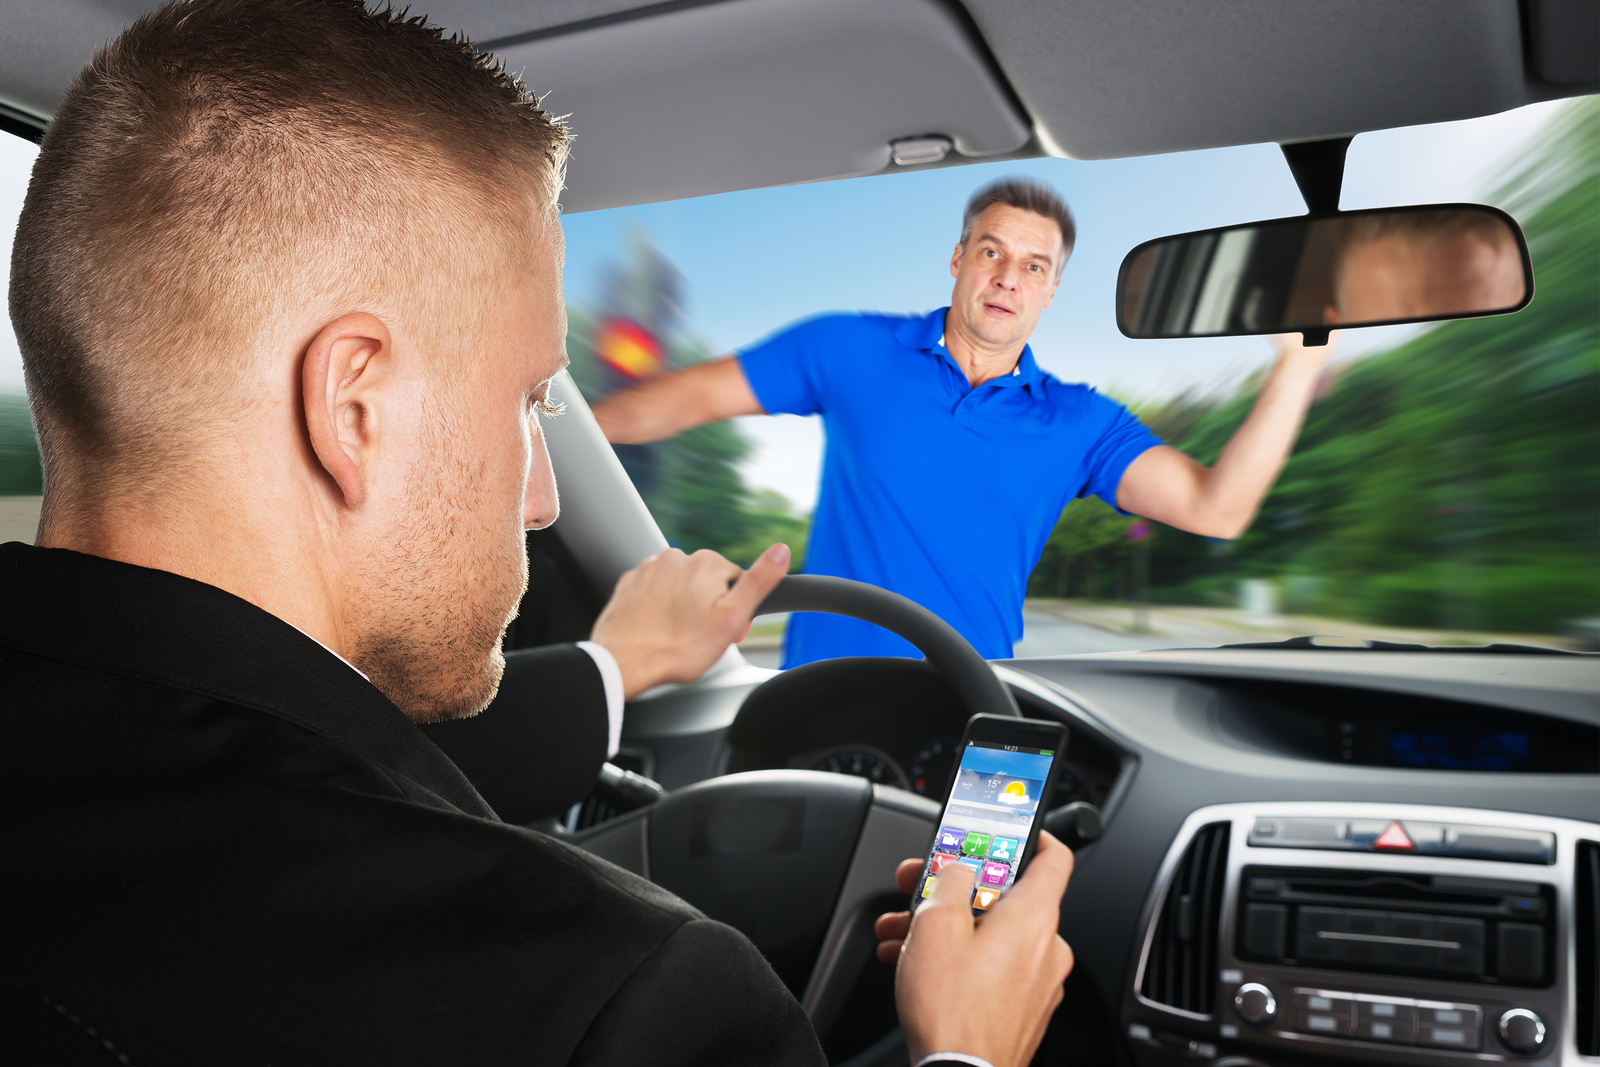 Image result for Distracted driver